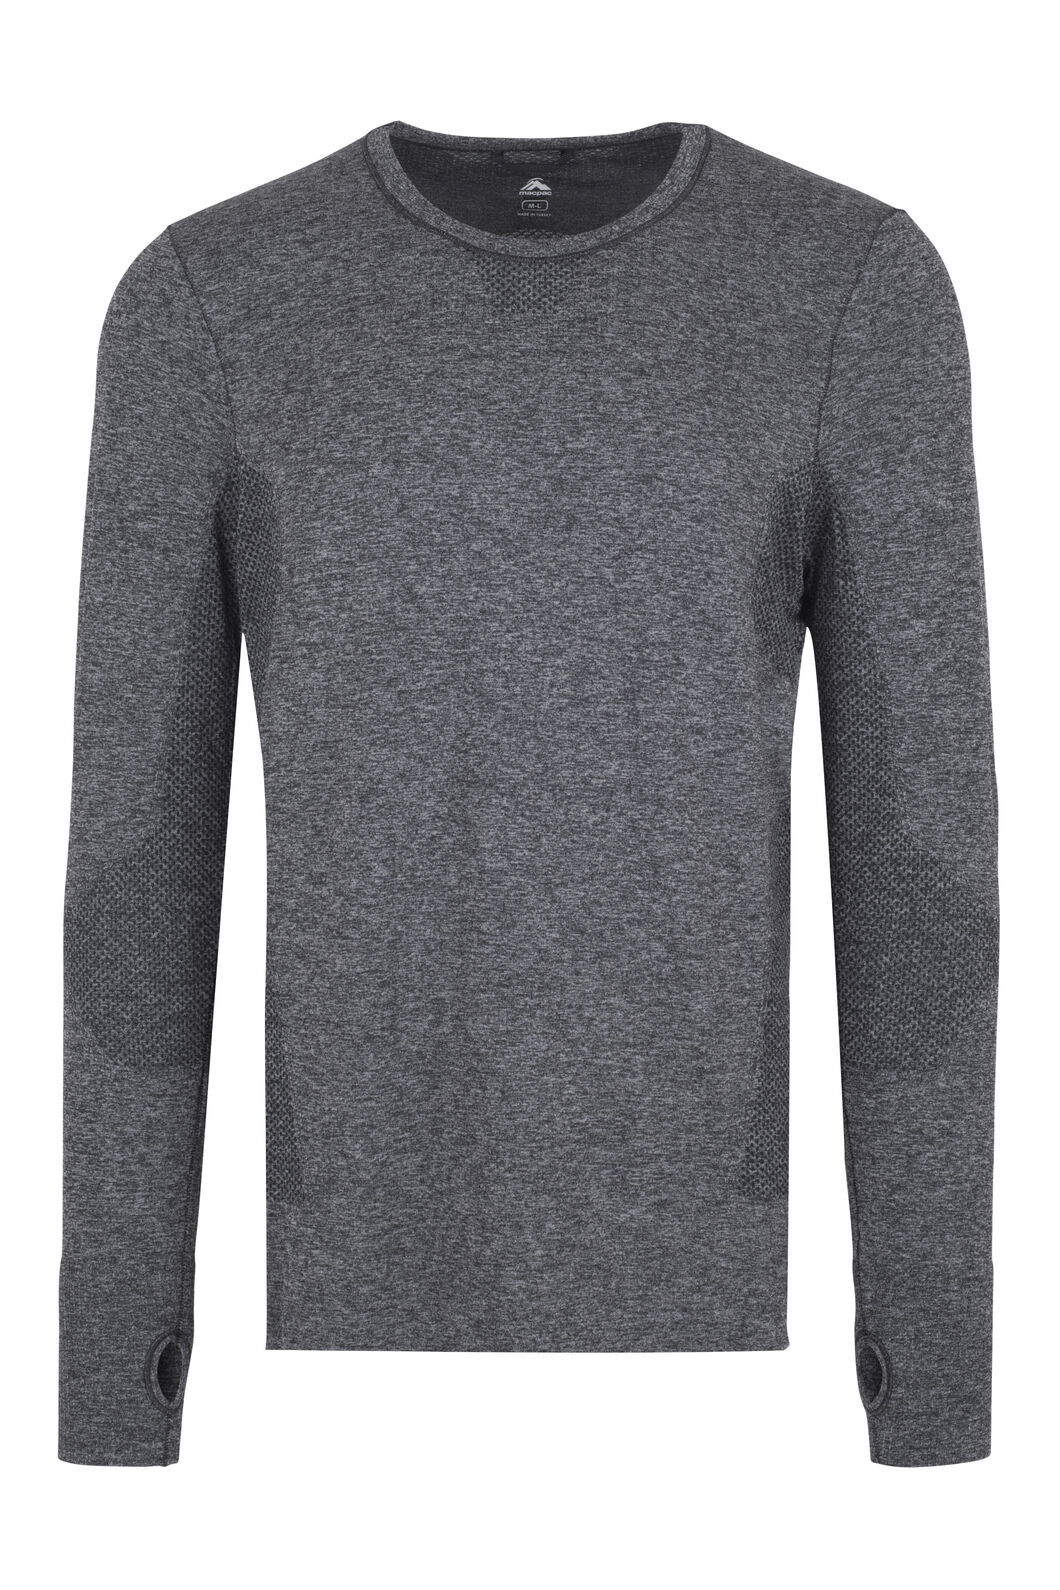 Macpac Limitless Long Sleeve Tee - Men's, Charcoal, hi-res